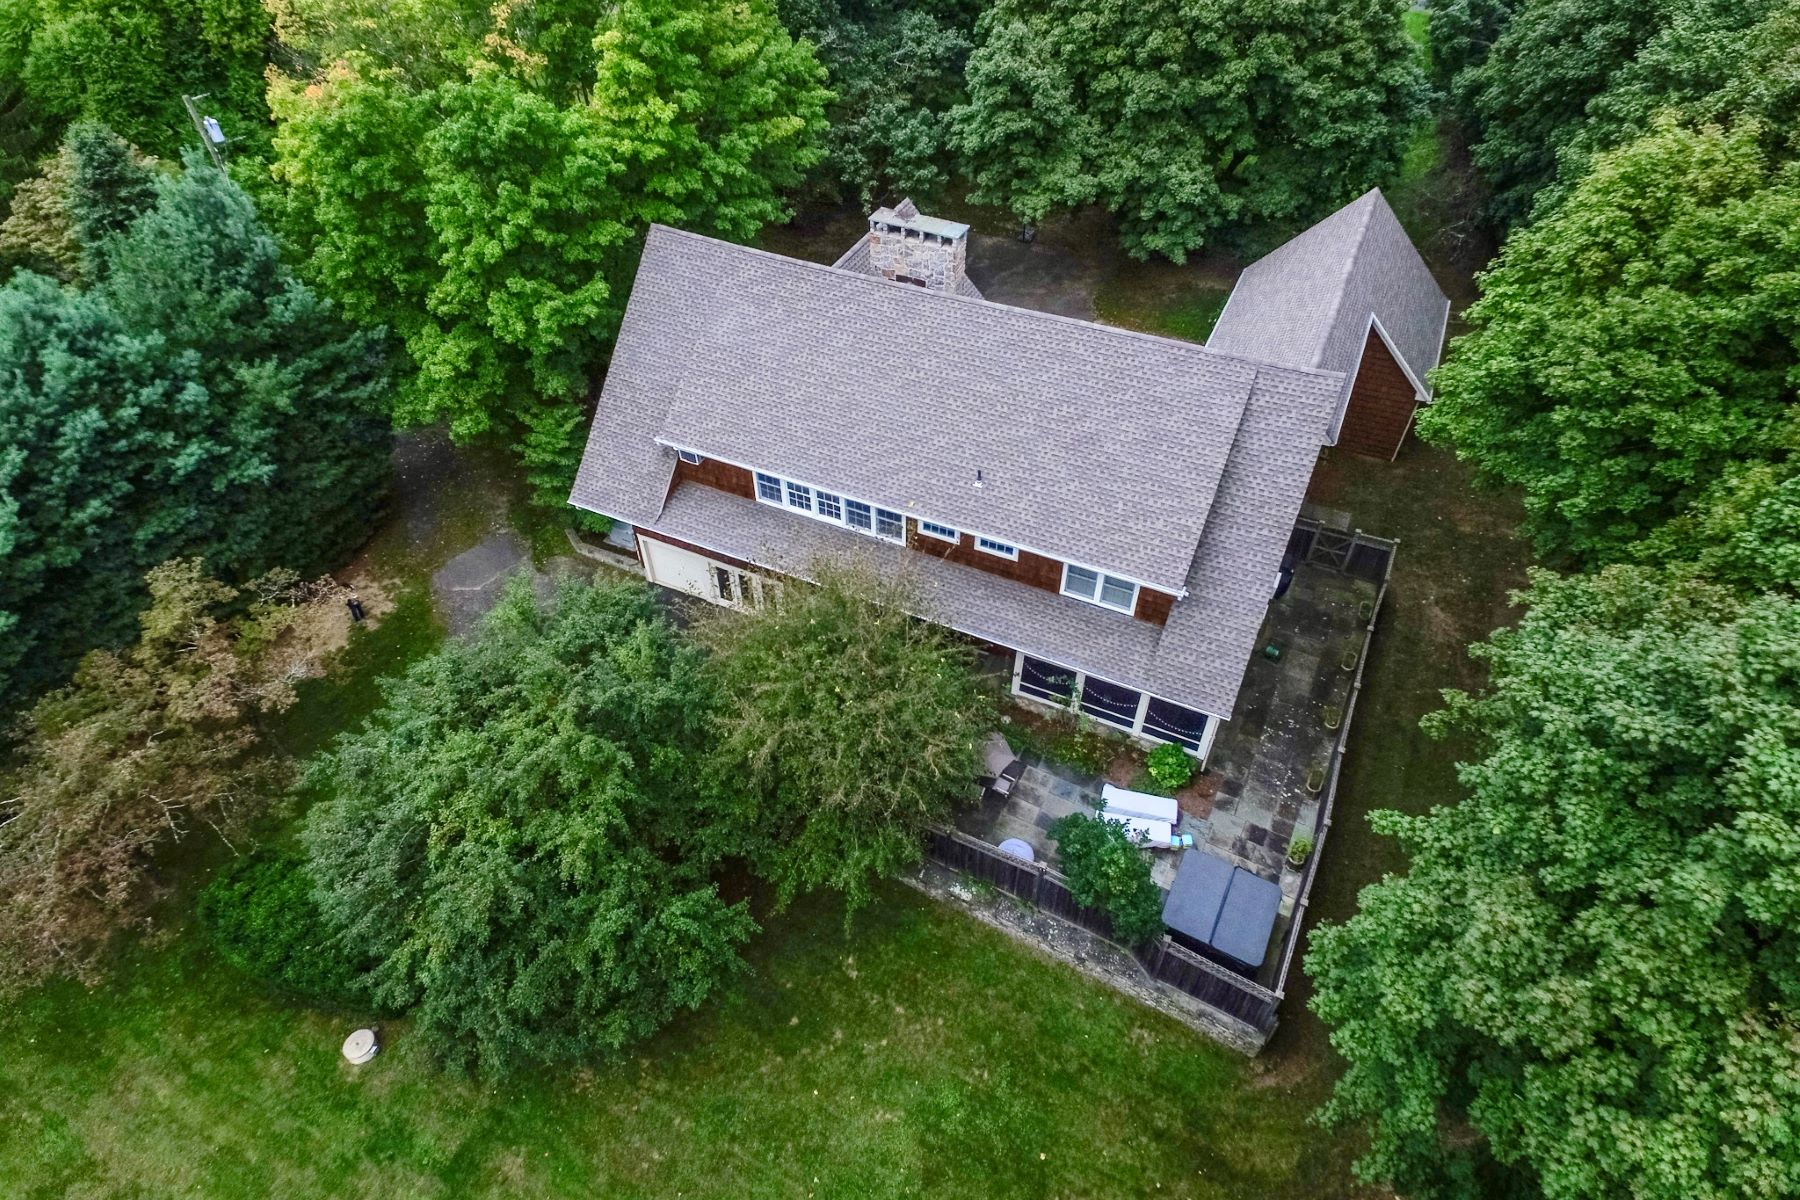 Single Family Home for Sale at Stunning Stone & Cedar Contemporary 12 Overlook Terrace Danbury, Connecticut 06811 United States